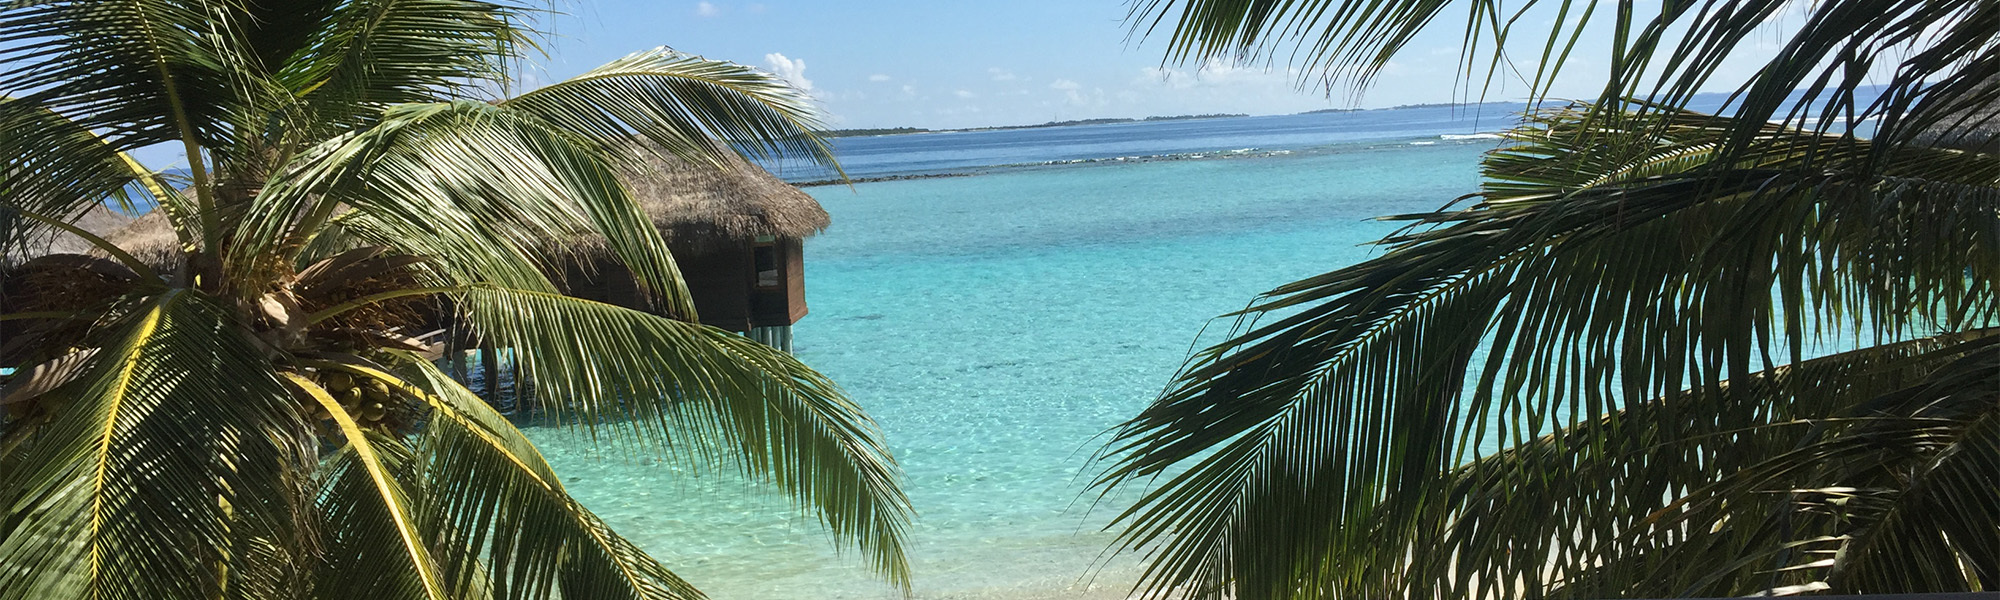 Tropical water and bungalow